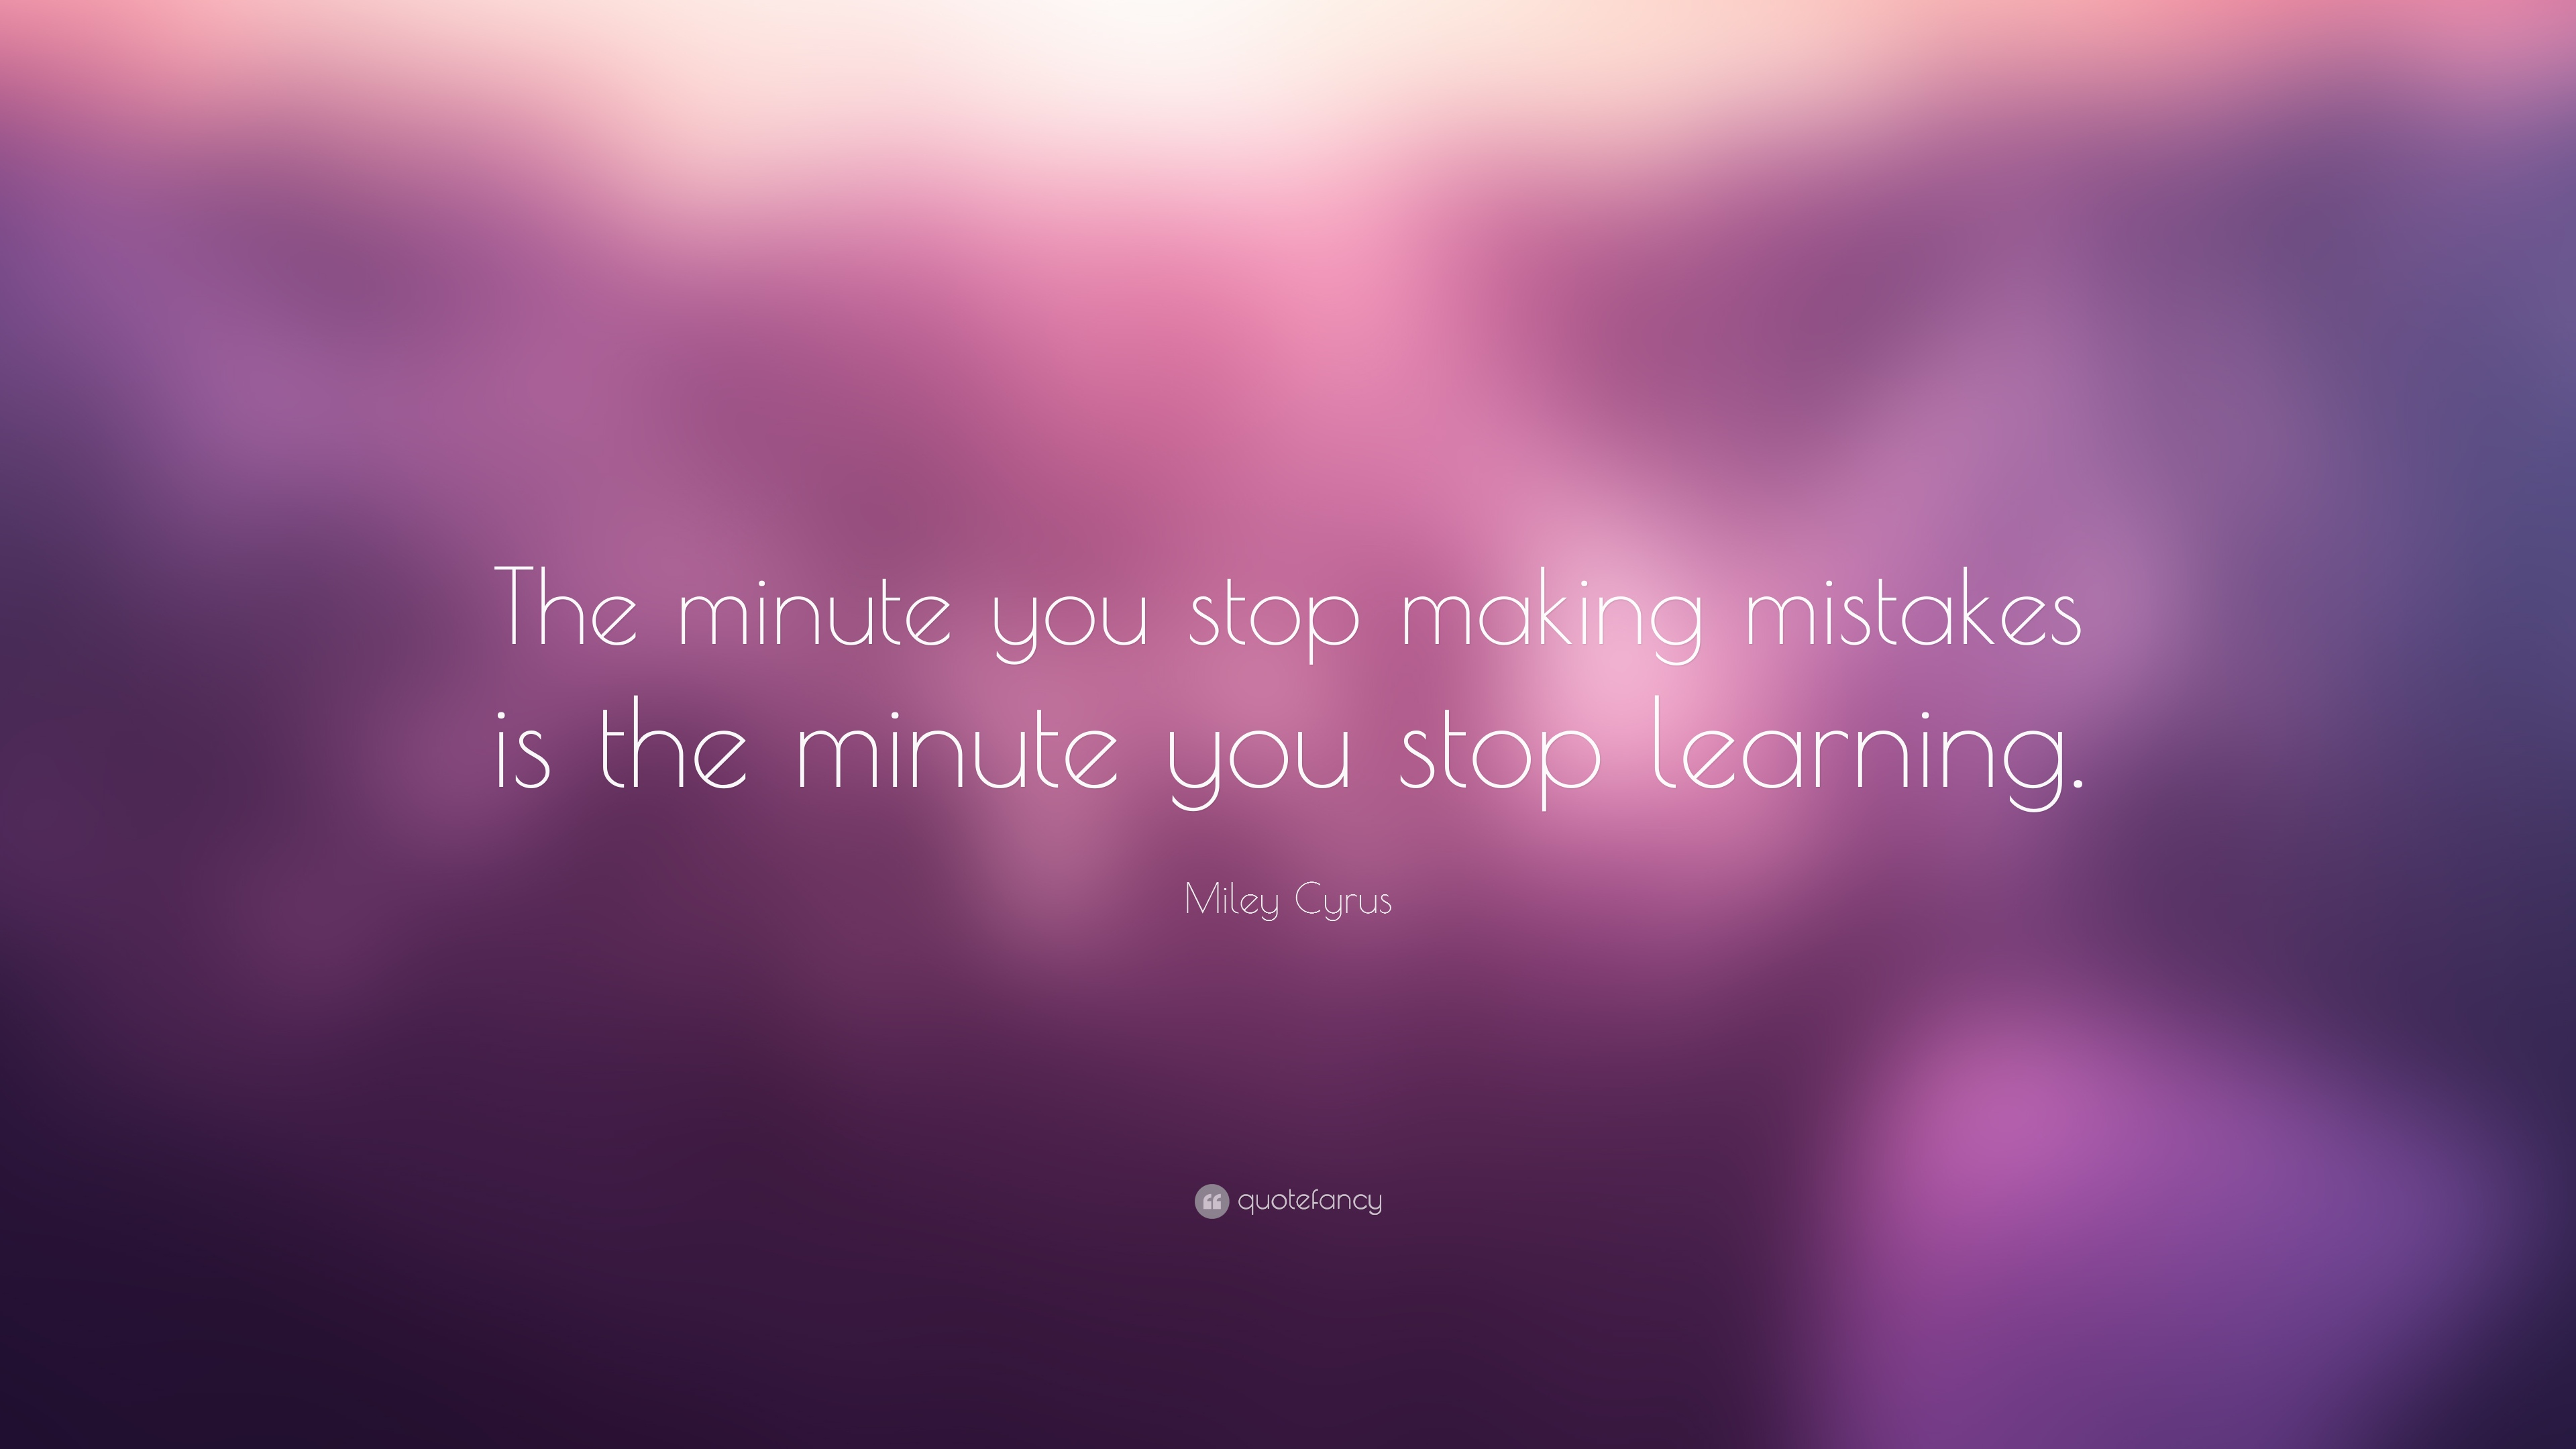 Miley Cyrus Quote The Minute You Stop Making Mistakes Is The